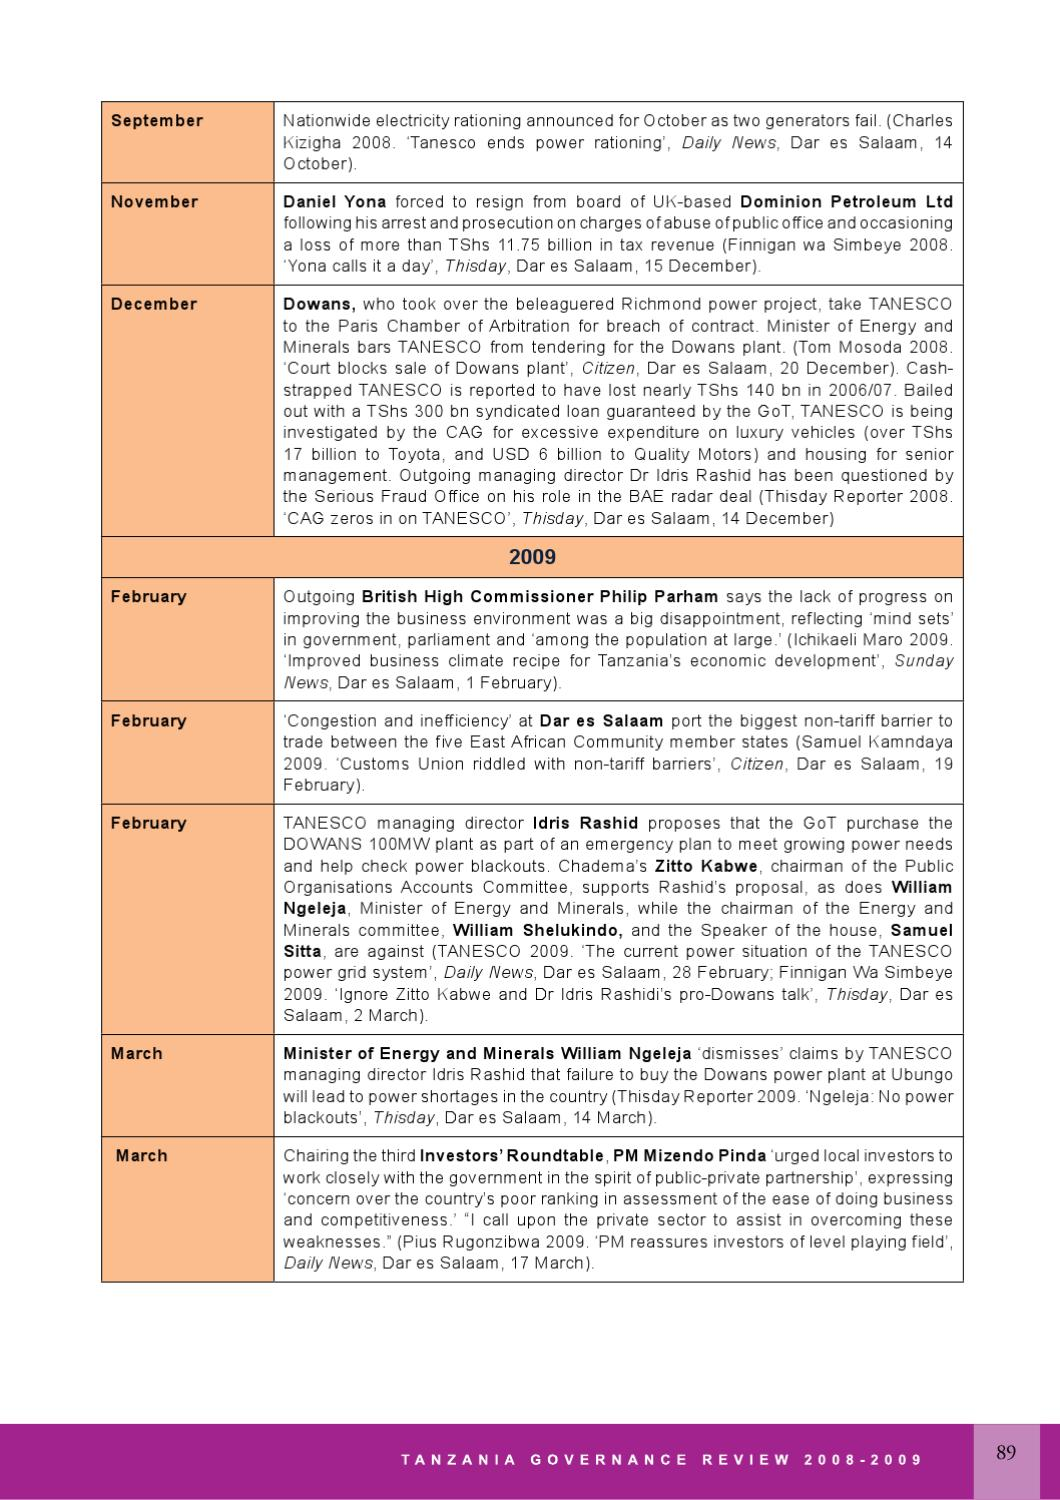 Tanzania Governance Review 2008/2009 by vijanaforum - issuu